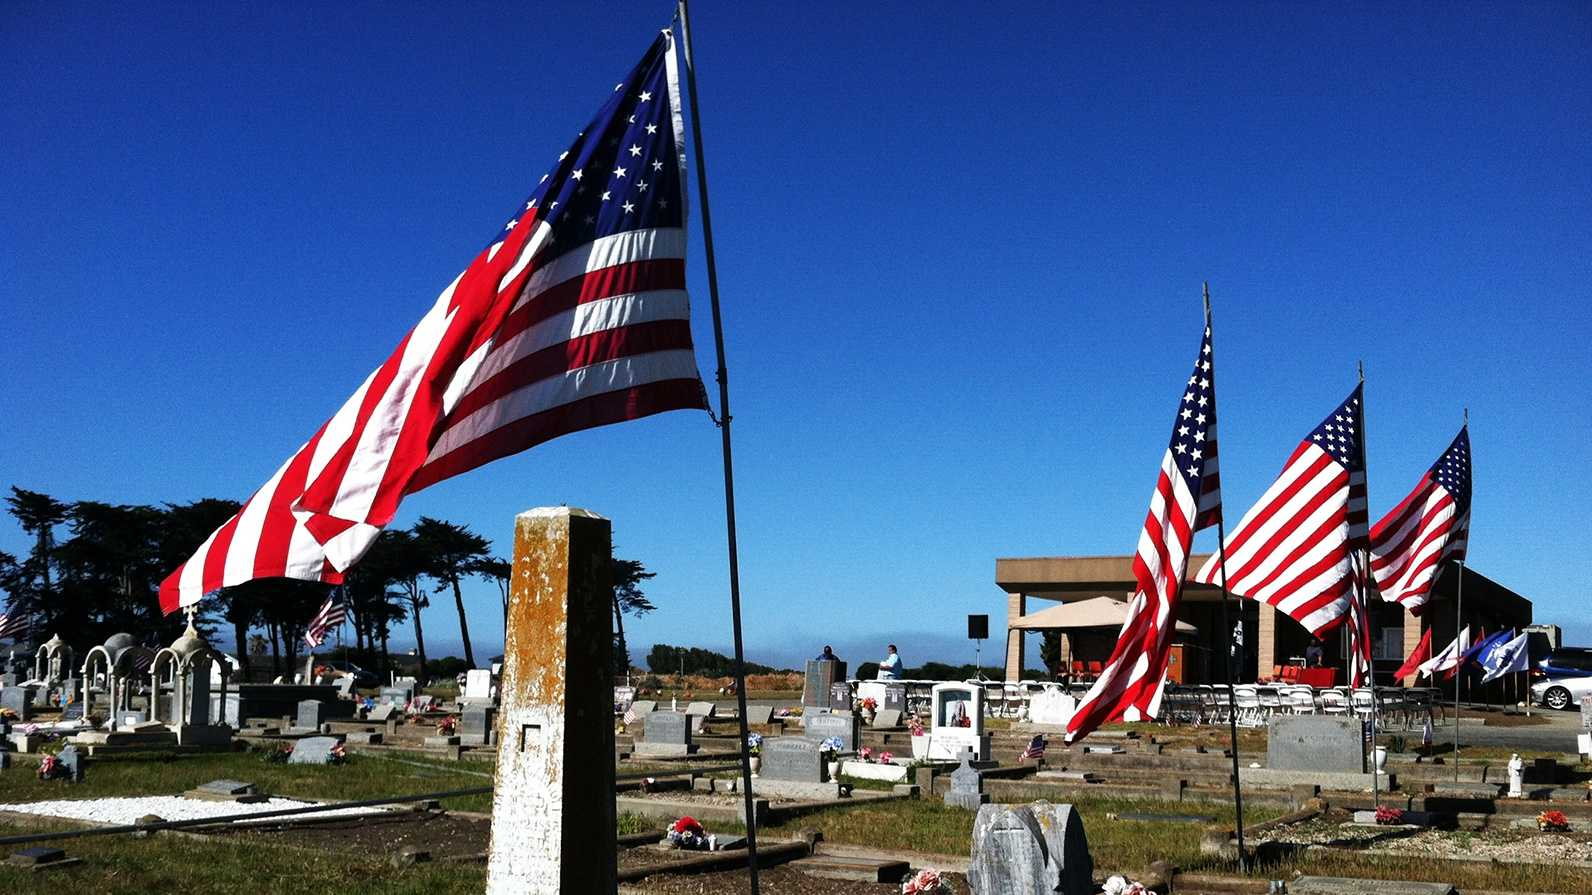 Flags were raised at a cemetery in Moss Landing on Memorial Day. (May 26, 2014)